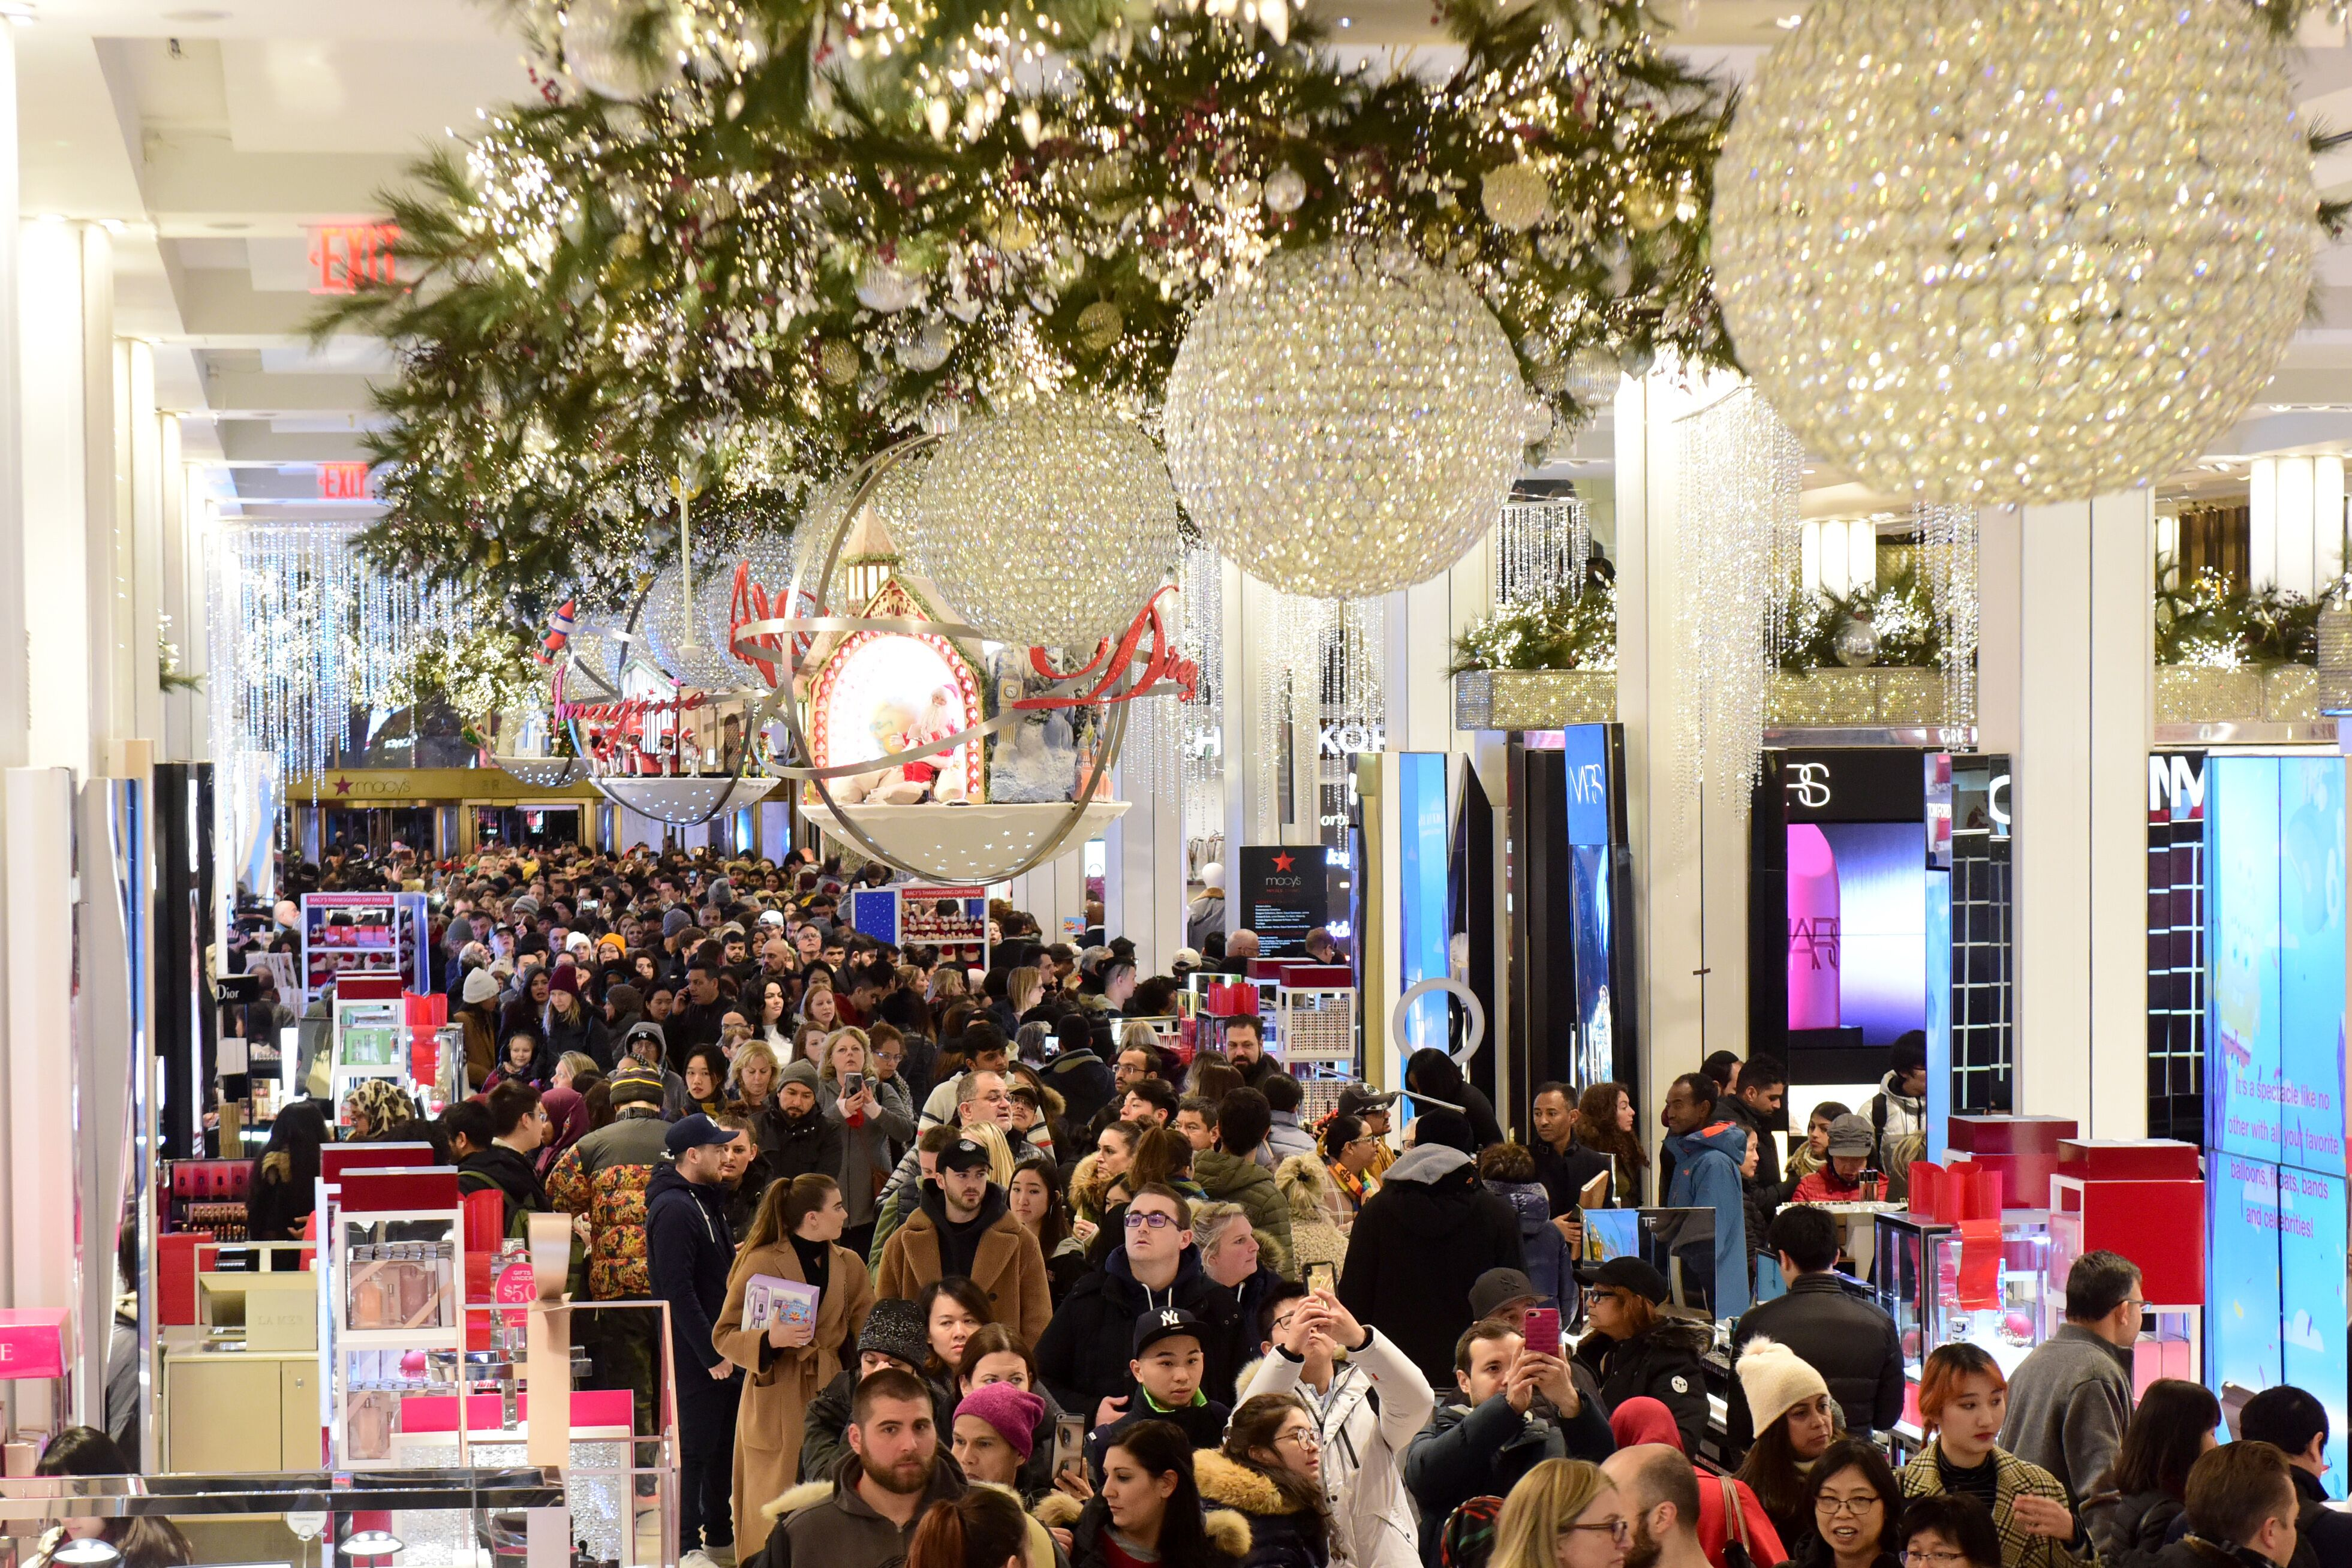 Shoppers surge into Macy's Herald Square at the 5 p.m. Thanksgiving Day opening.